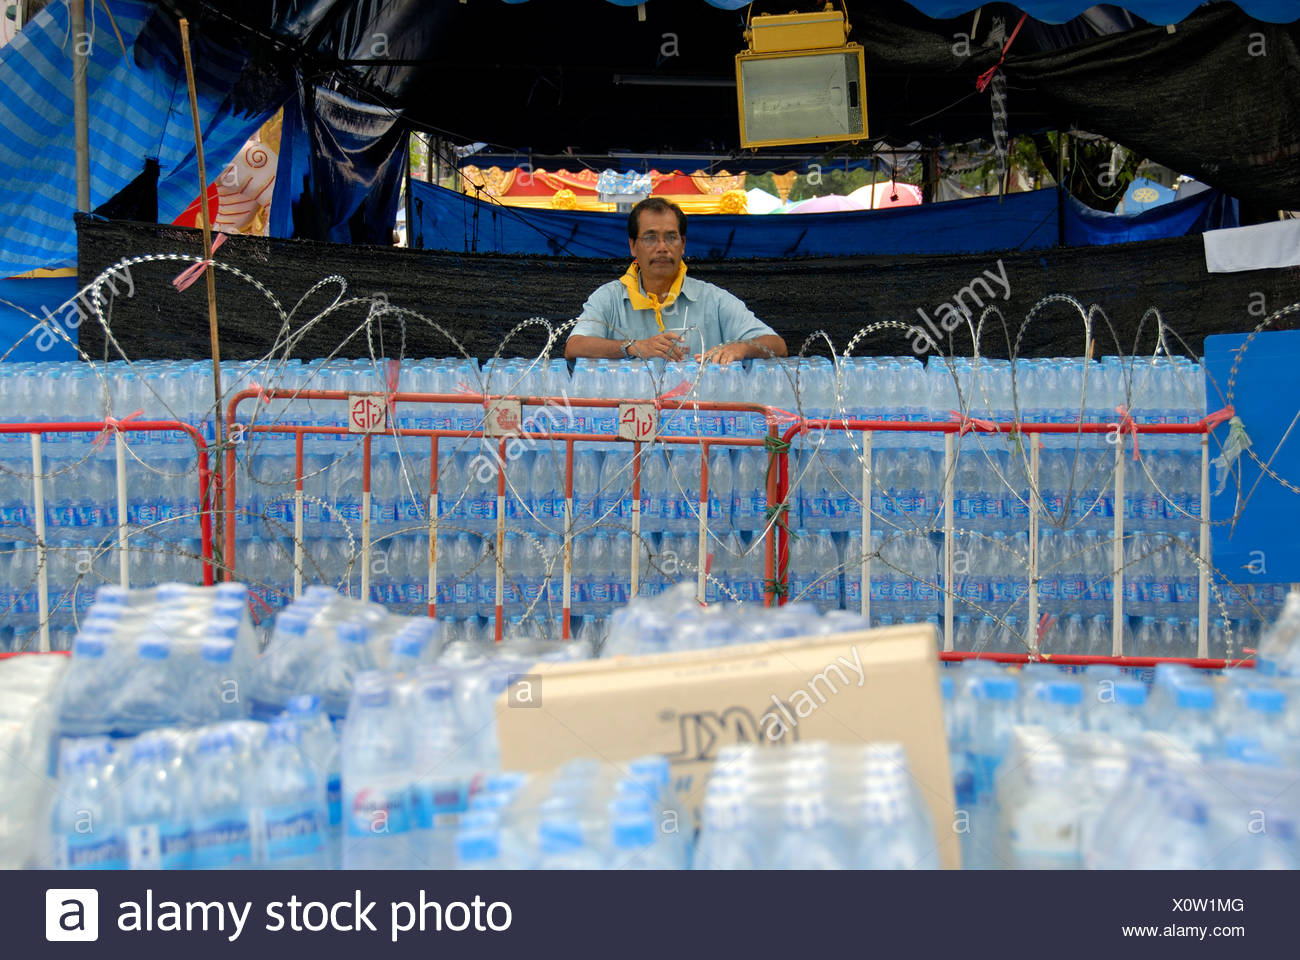 Demonstration, water bottles cordon of the demonstrators, Bangkok, Thailand, Southeast Asia - Stock Image